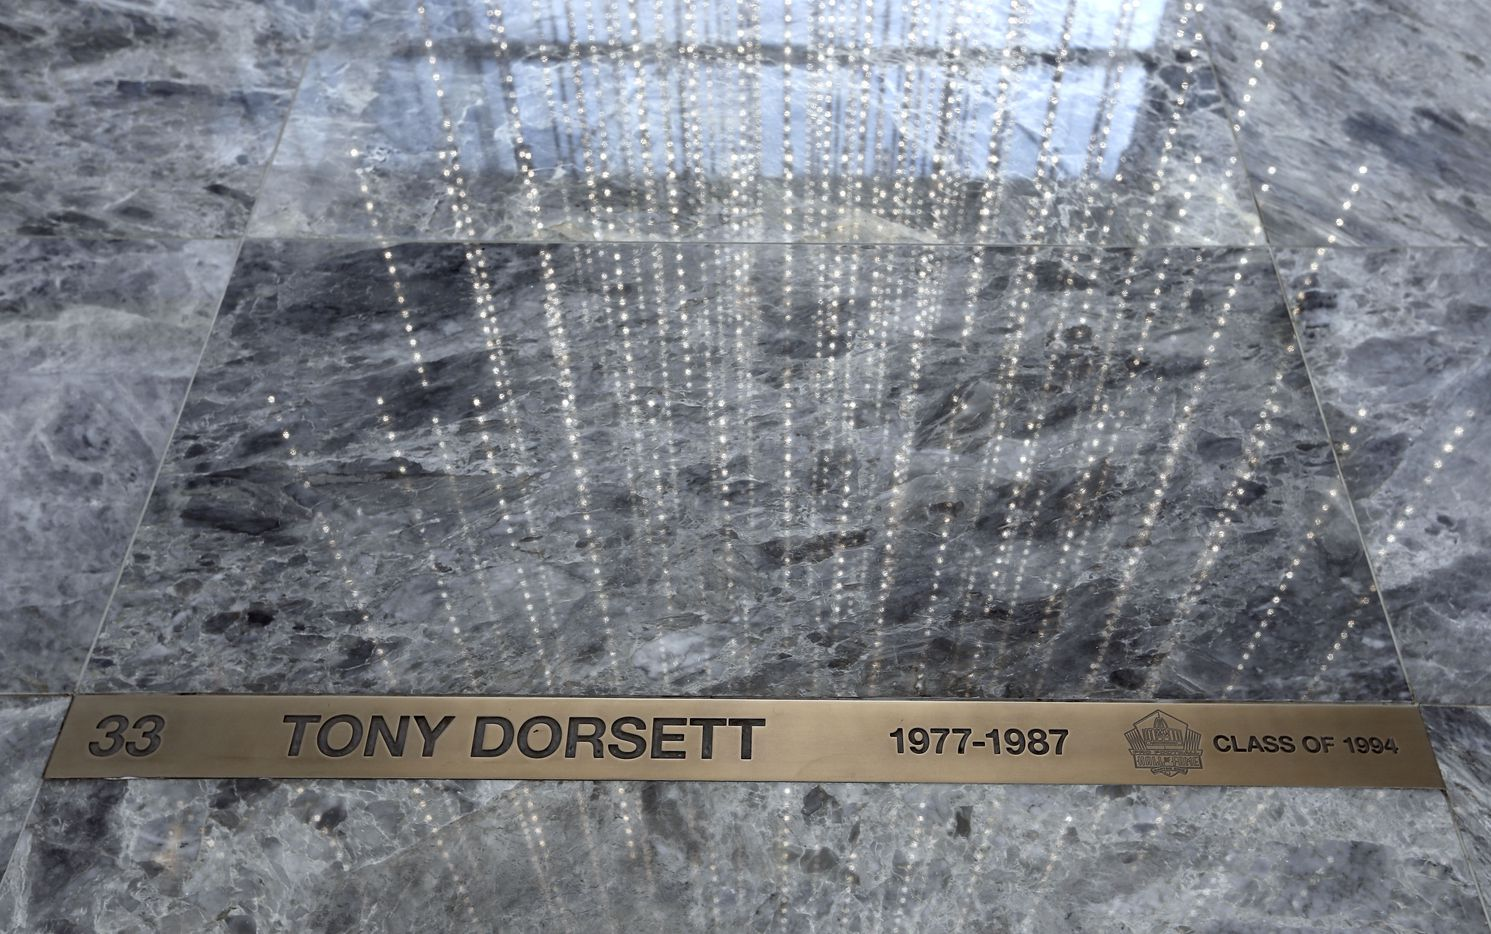 Marbled floor with former players' name plates — including Tony Dorsett — are featured in the floor of the Dallas Cowboys headquarters at The Star in Frisco.